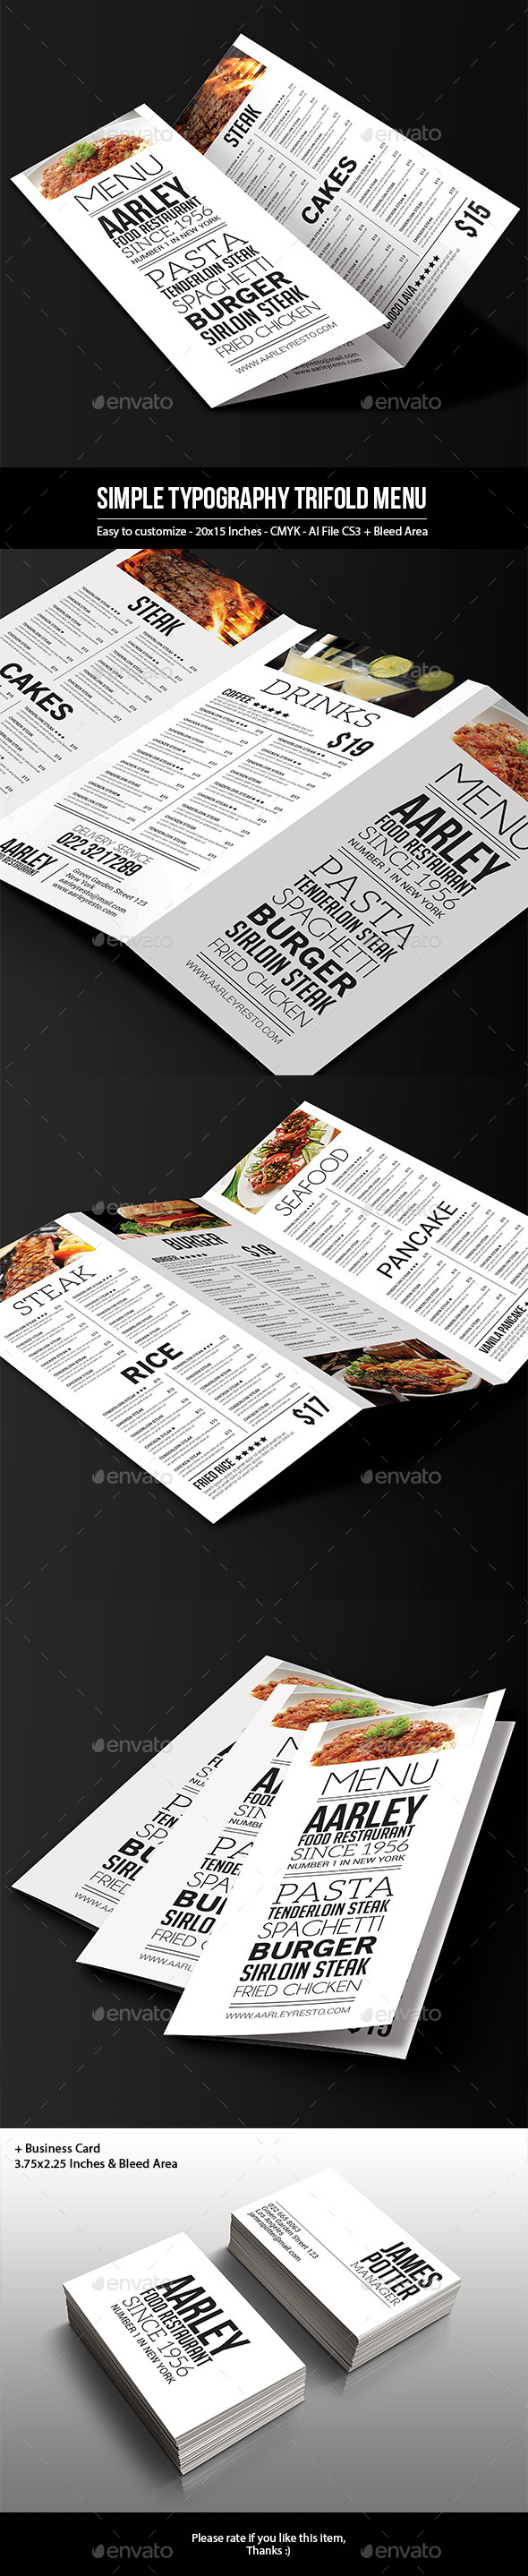 GraphicRiver Simple Typography Trifold Menu 9949696